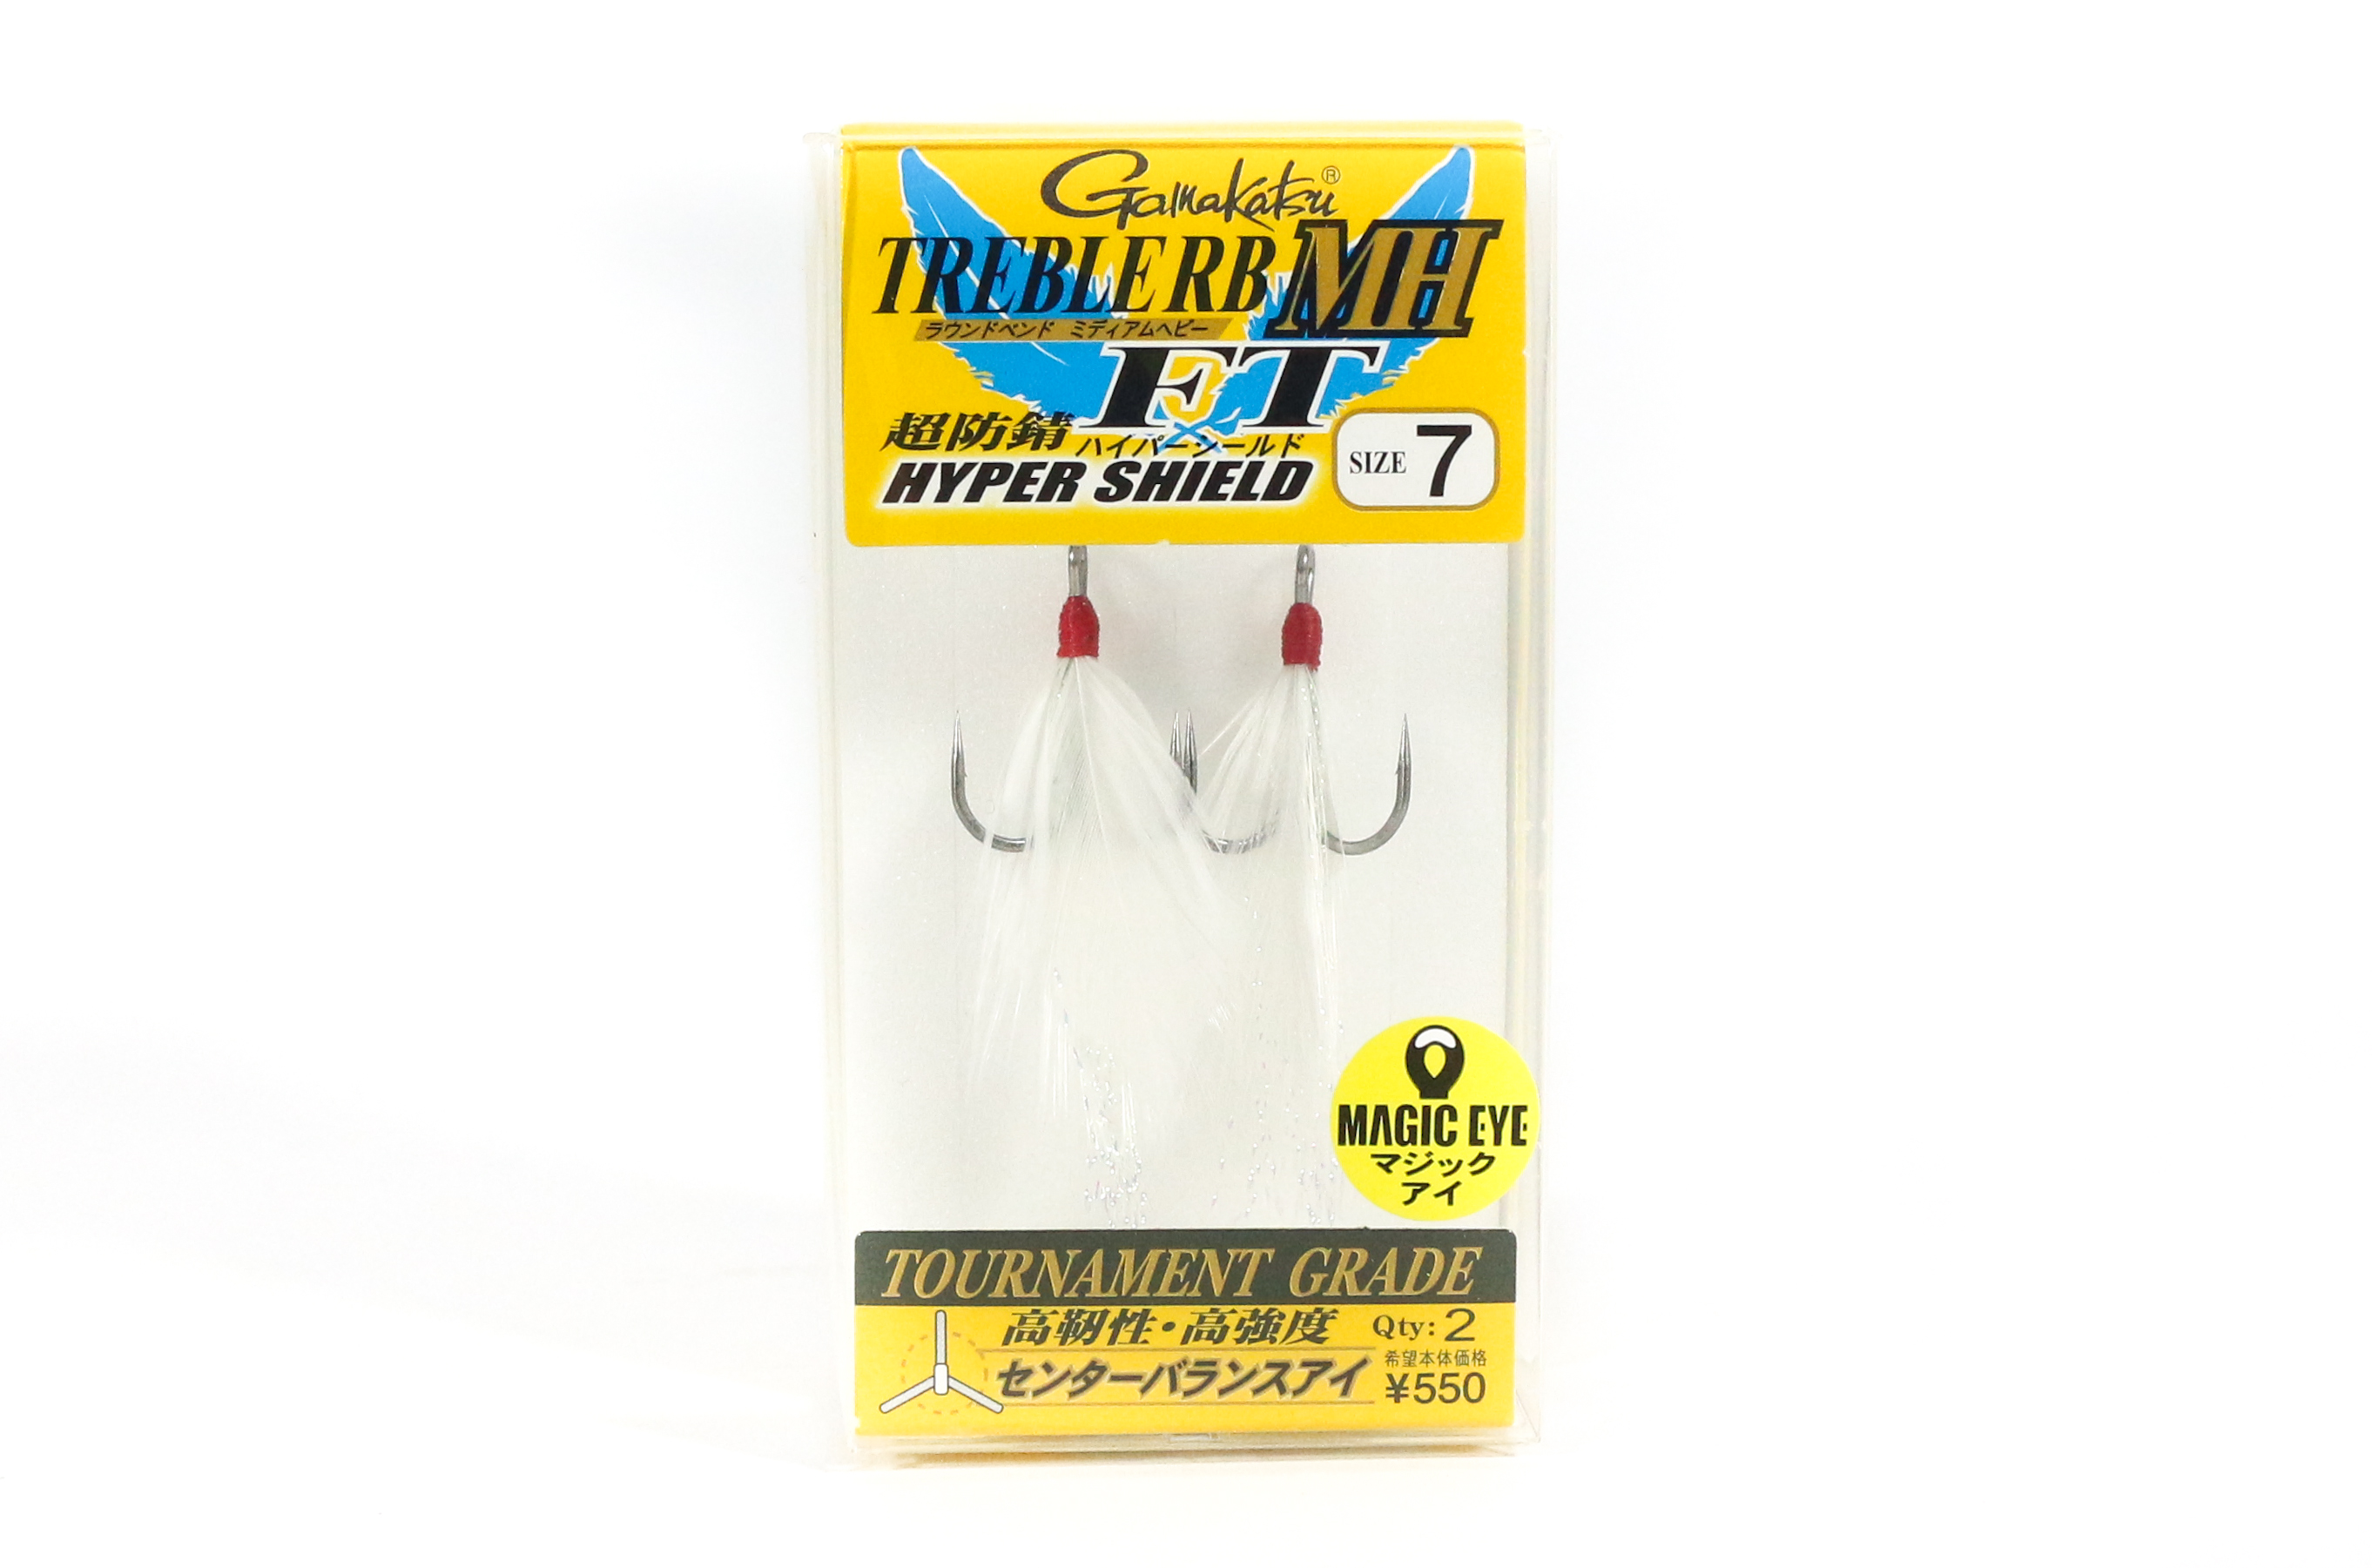 Gamakatsu Treble Hook RB MH FT Feather Hyper Shield Size 7 (3820)